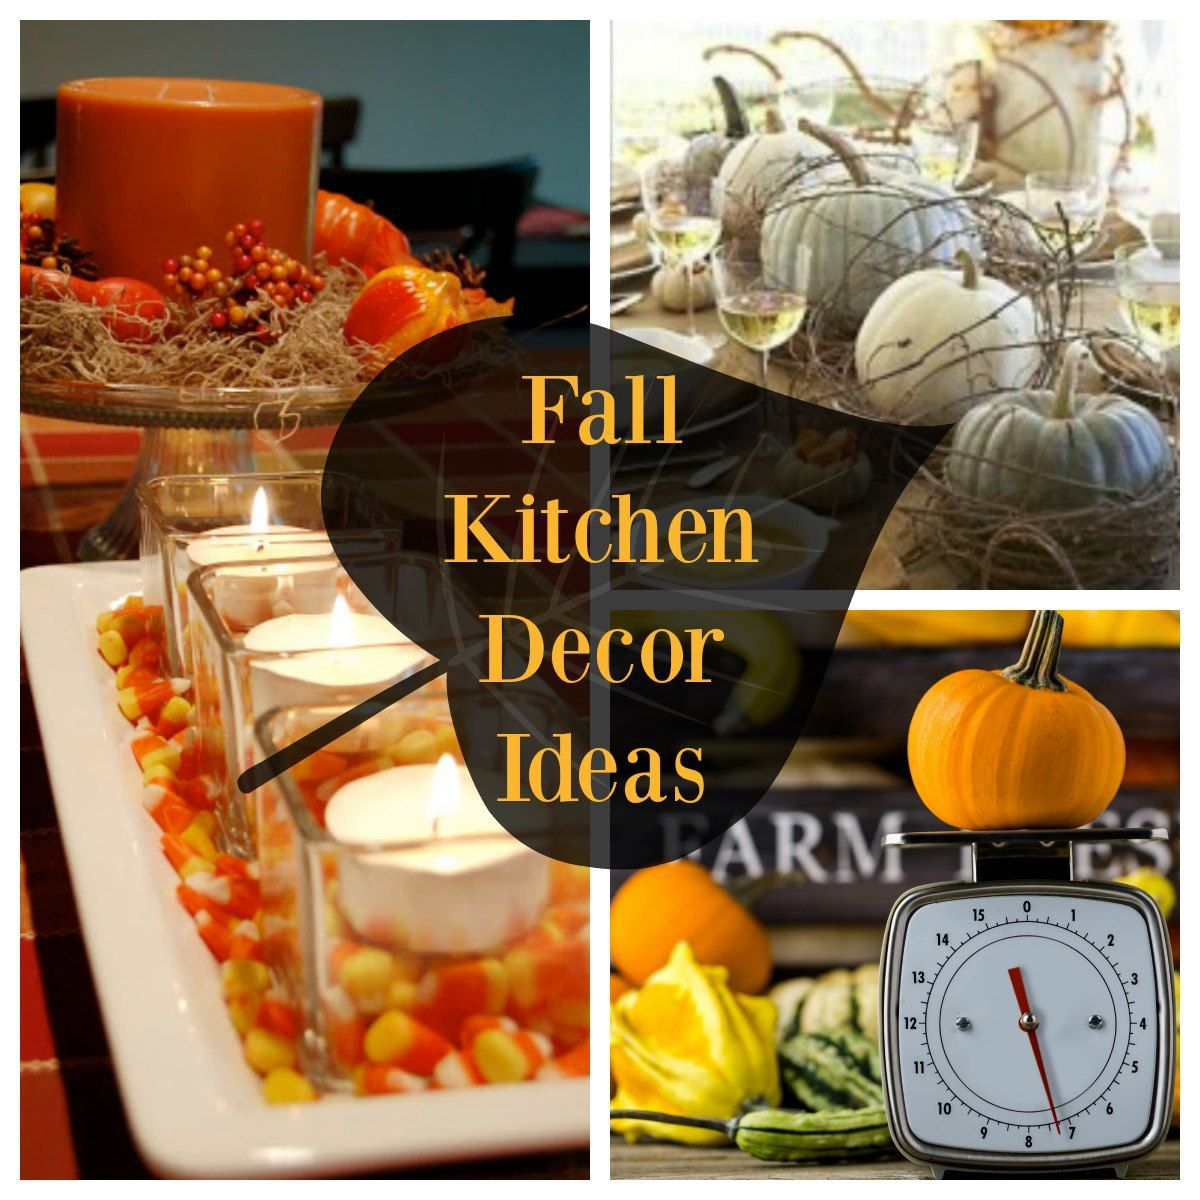 Fall Kitchen Decorating Fall Kitchen Decor Ideas Decorate With Pumpkins Gourds And